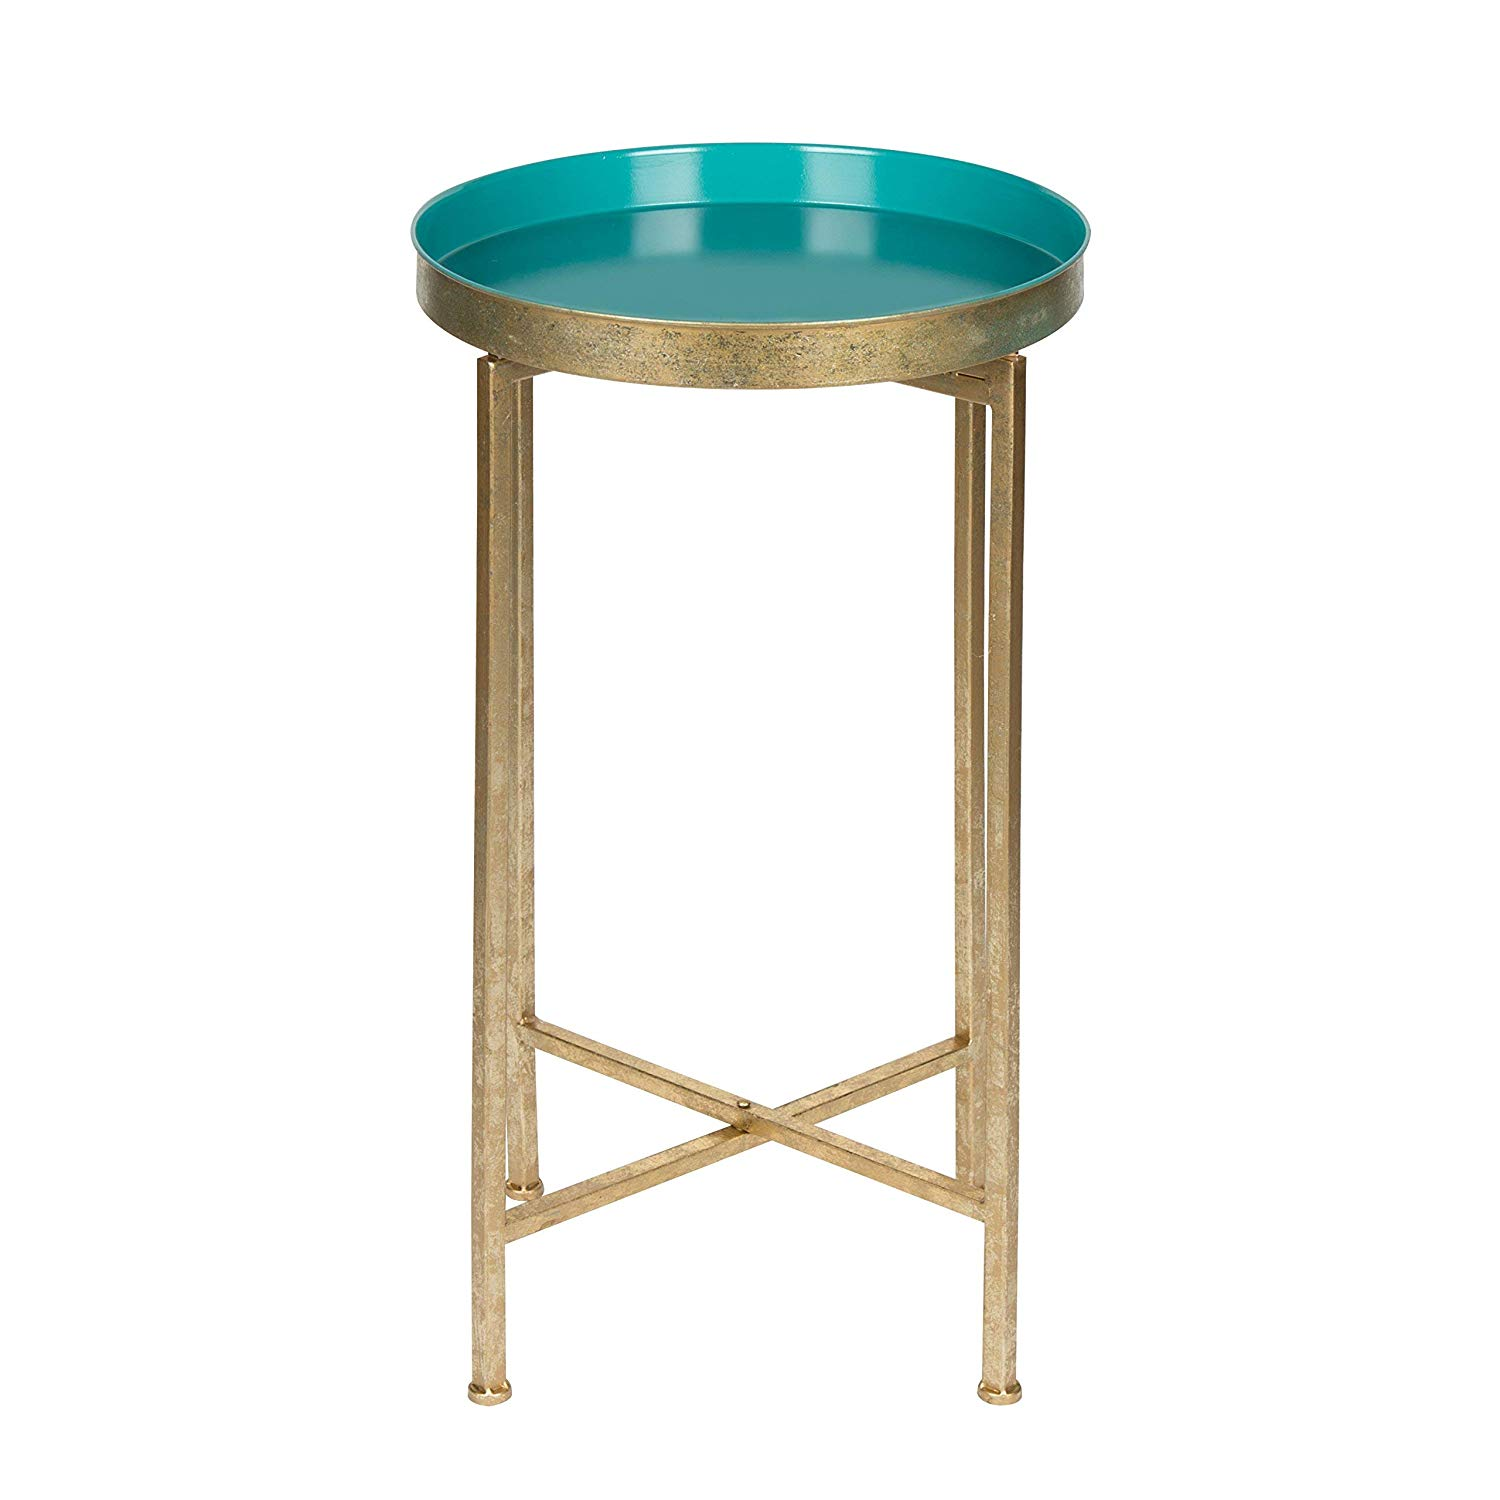 kate and laurel celia round metal foldable tray accent table teal gold kitchen dining room furniture nate berkus side low drum throne rattan outdoor clearance college dorm